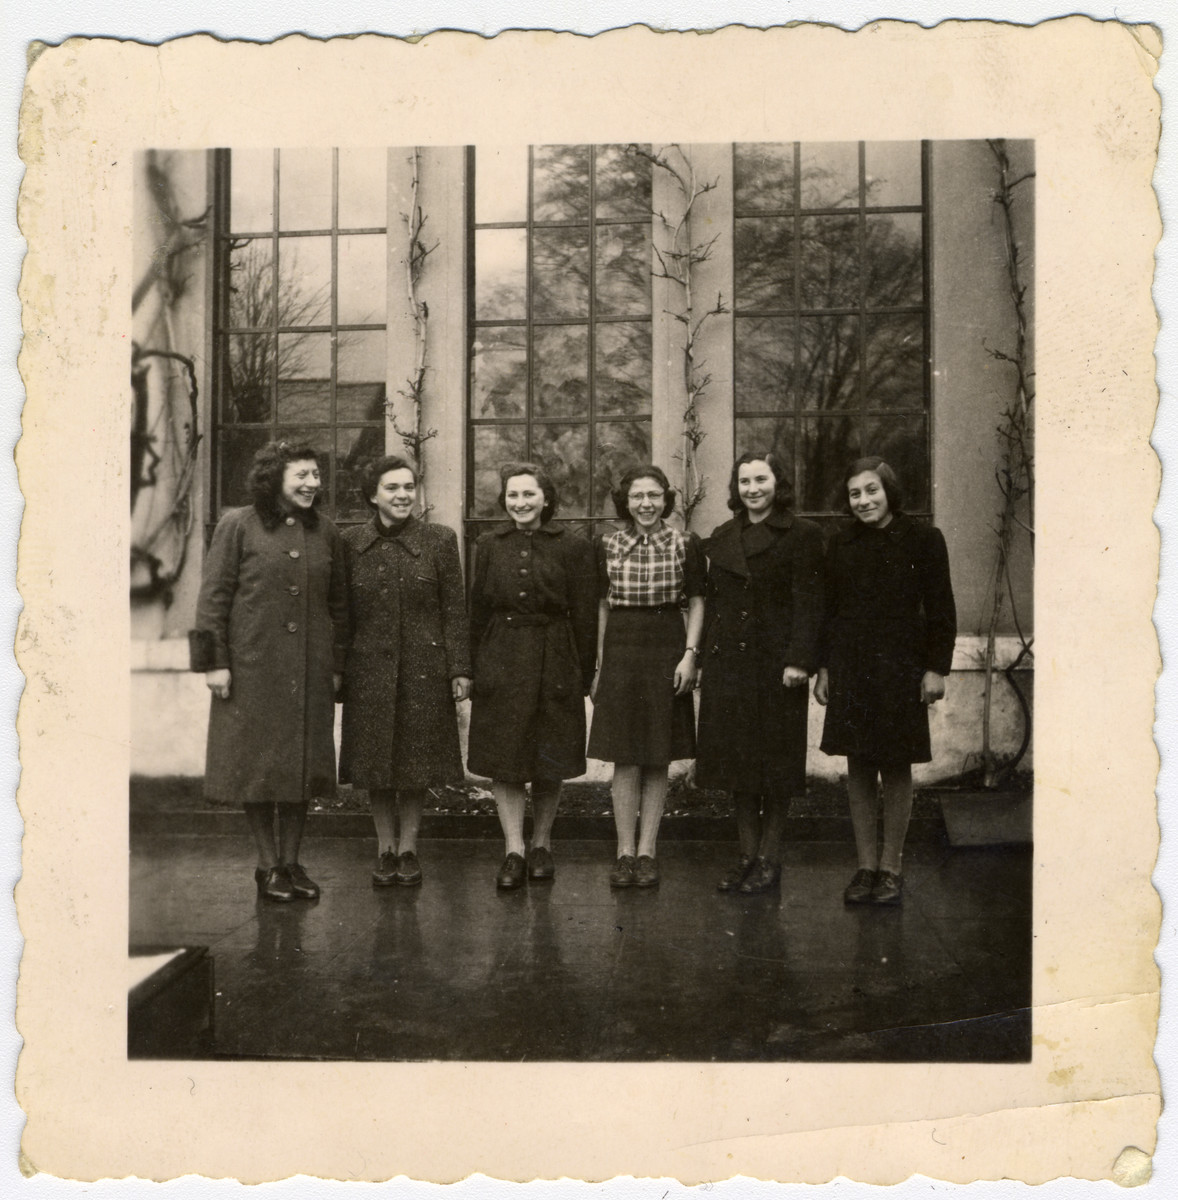 Group portrait of all the female residents of Dr. Stern's children's home in Basel.  Ruth Schwarzhaupt stand on the far right.